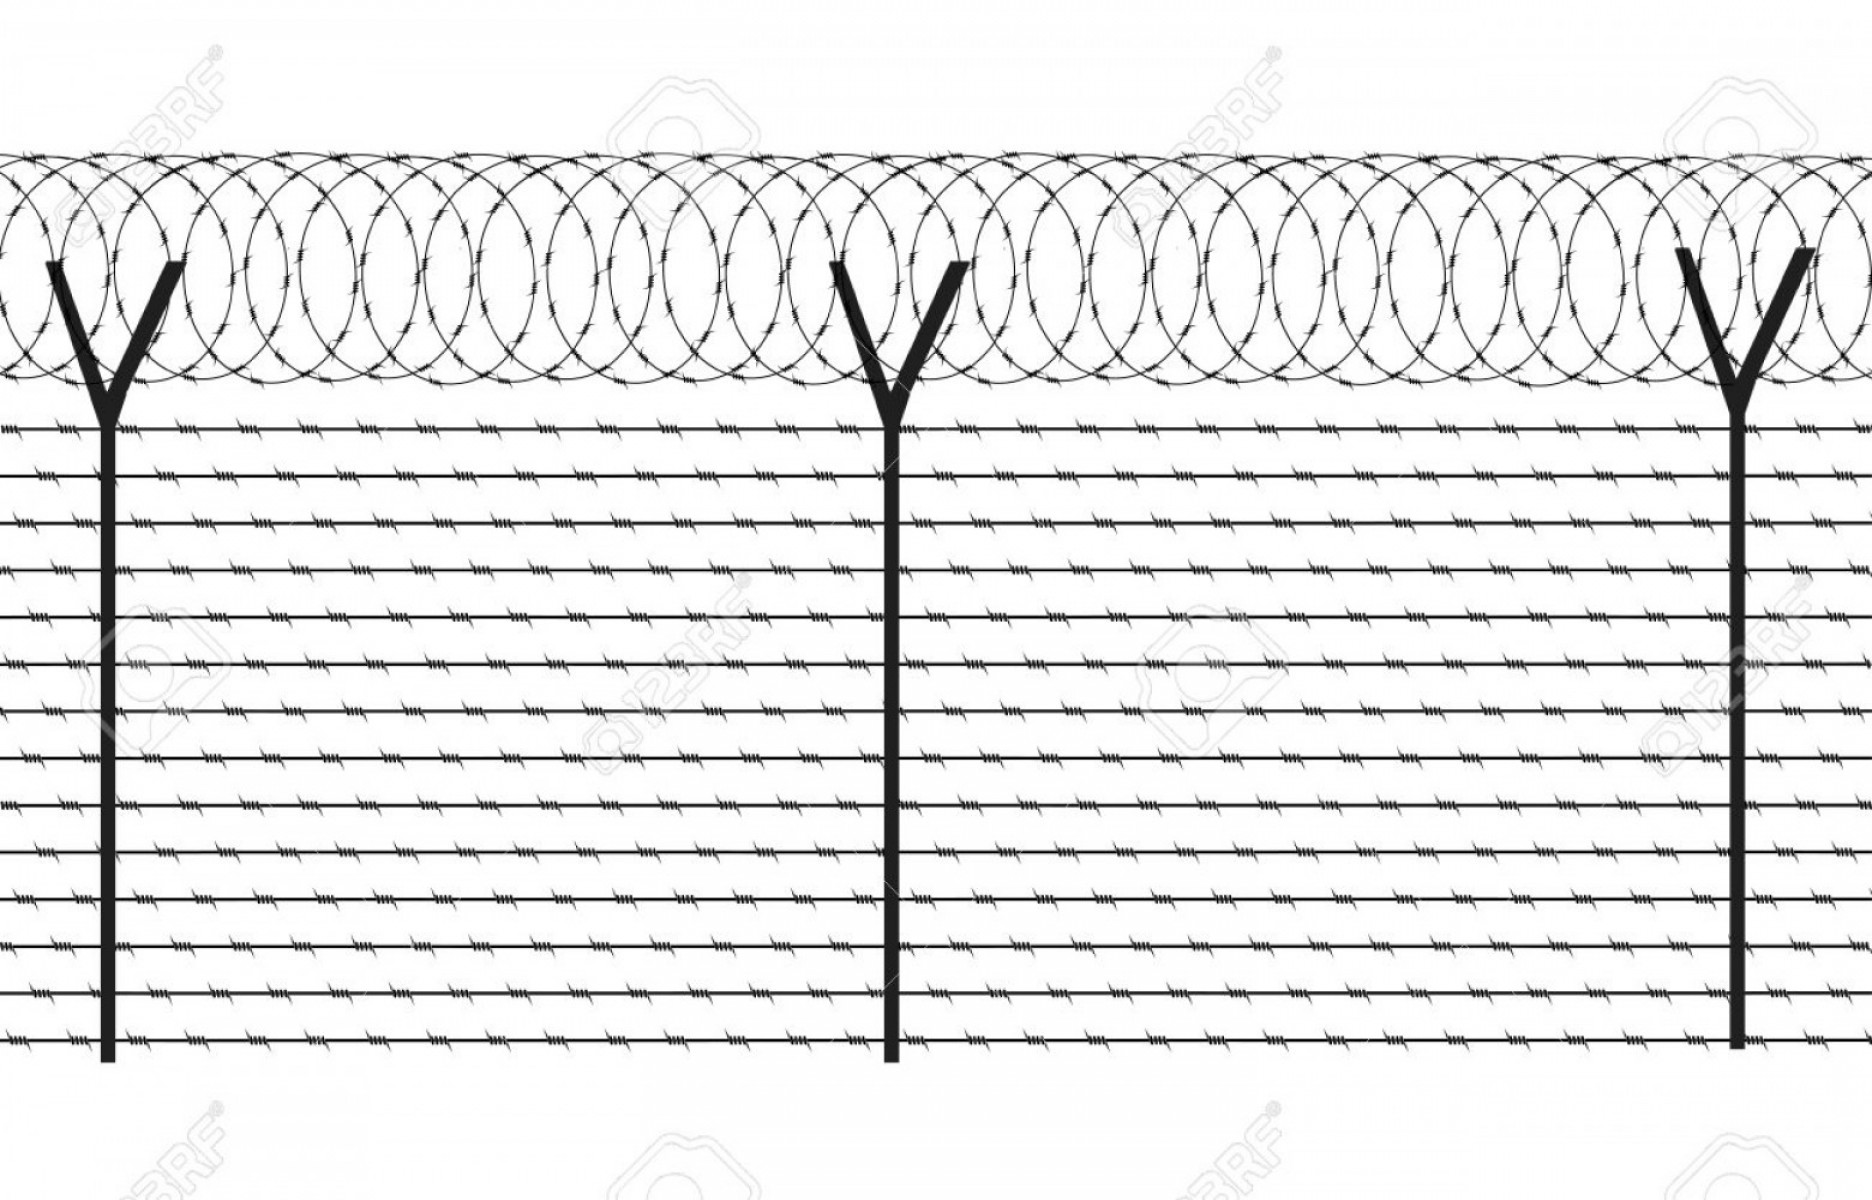 Fence Post Barbed Wire Vector Clip Art: Fencing Element From A Barbed Wire